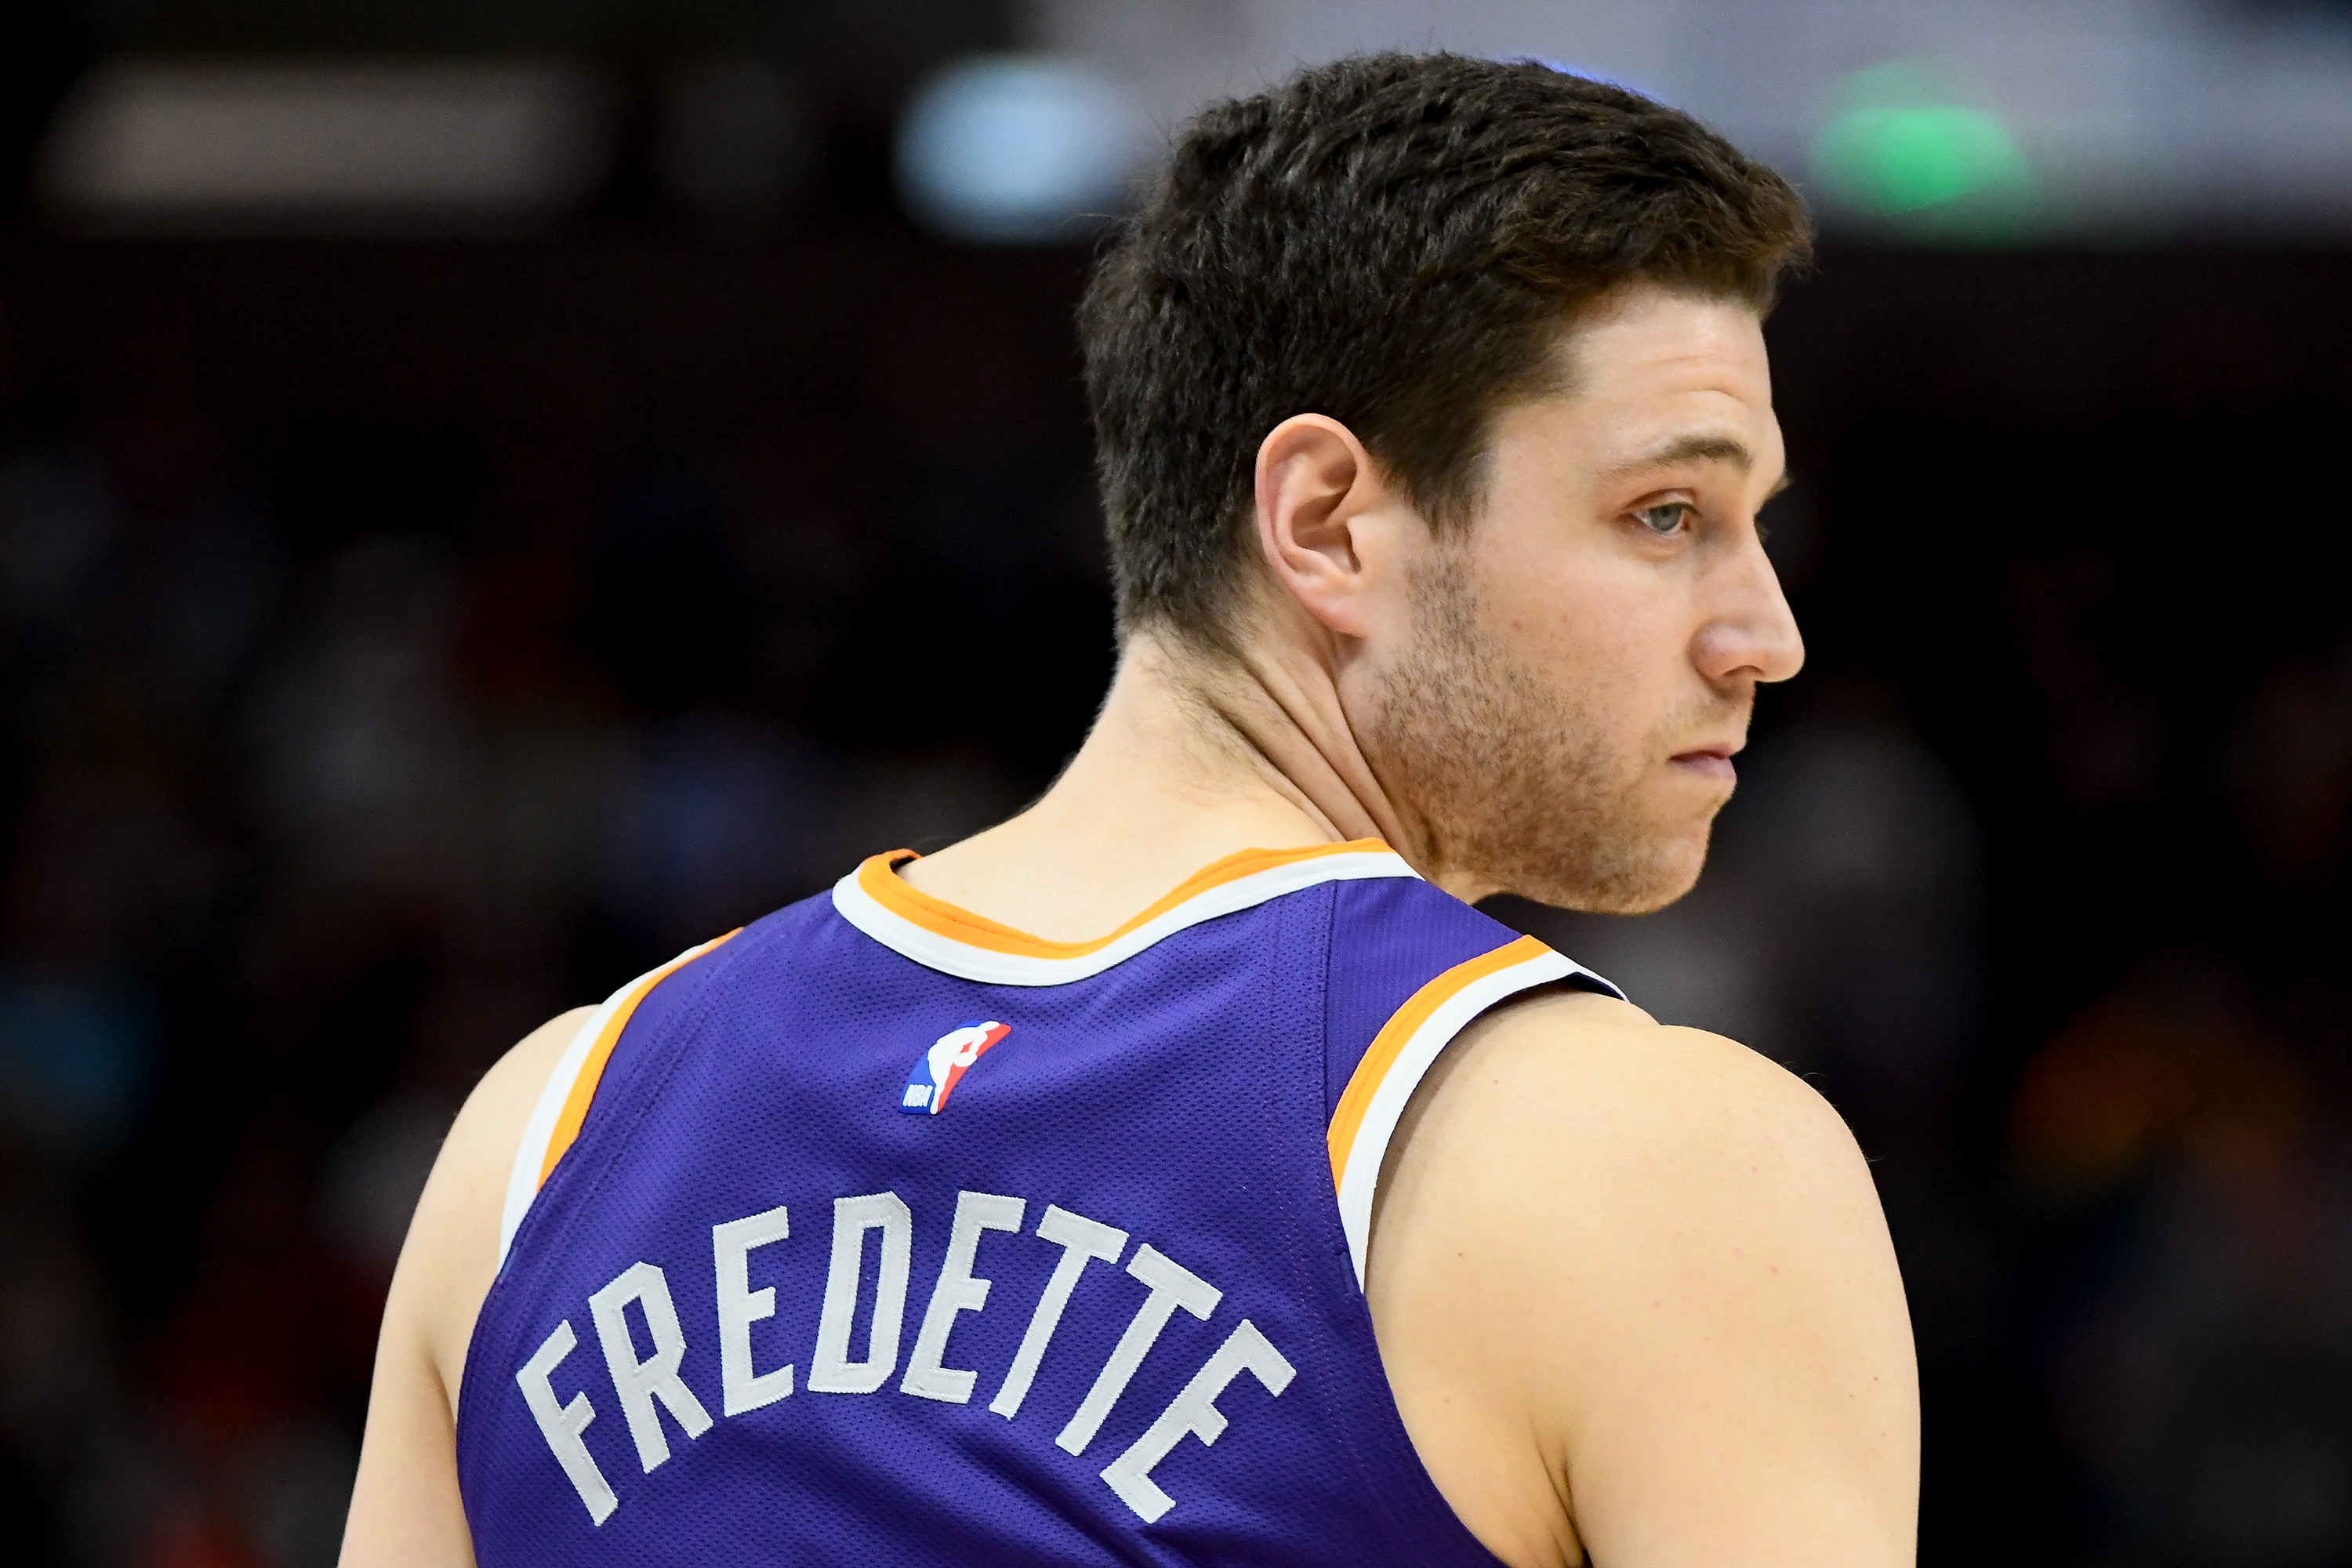 Jimmer Fredette's Summer League with the Warriors has come to an end